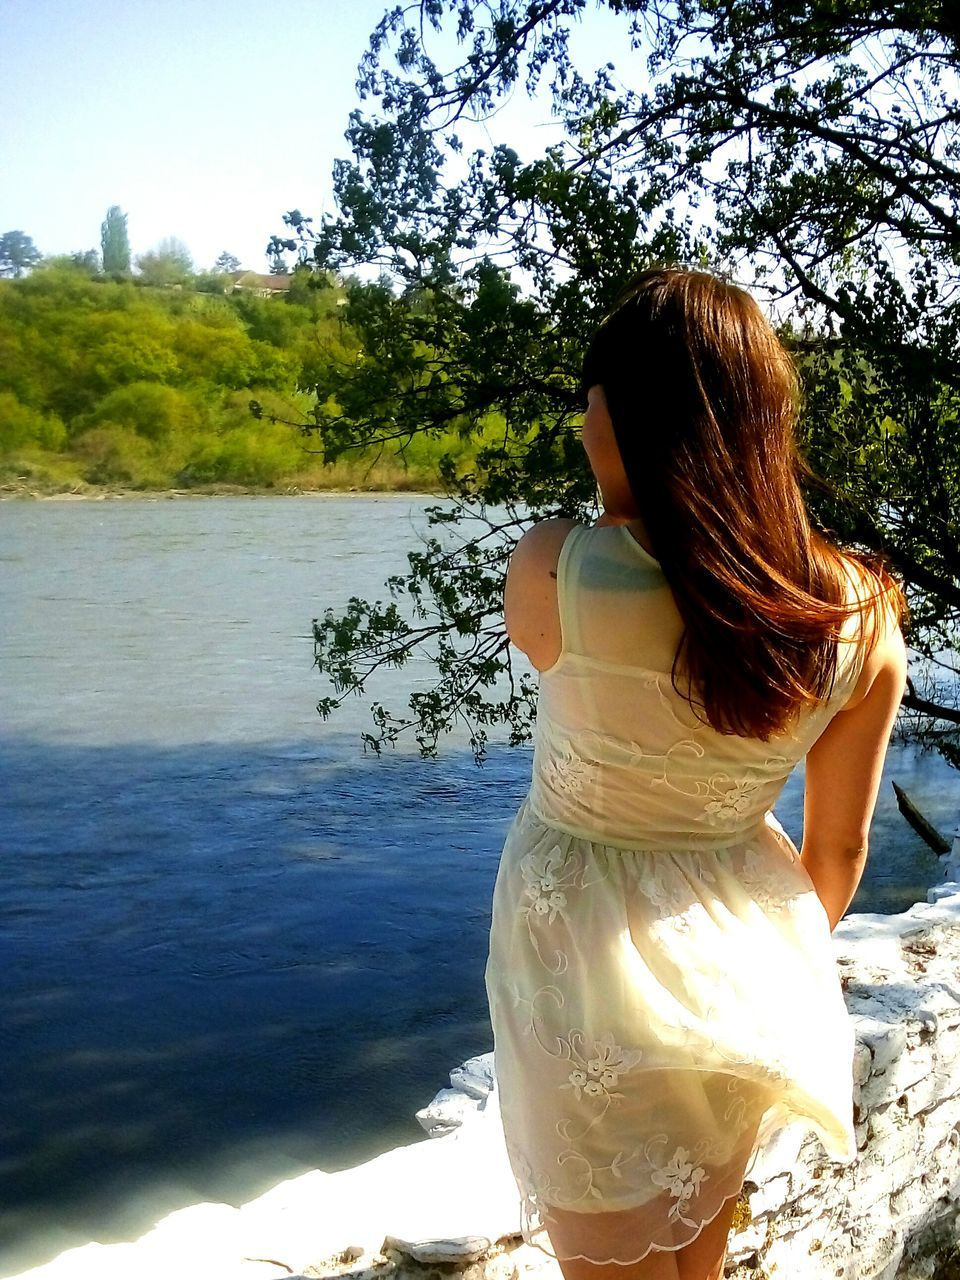 rear view, real people, one person, standing, leisure activity, nature, lifestyles, long hair, day, tree, tranquility, women, sunlight, outdoors, beauty in nature, young women, water, young adult, sky